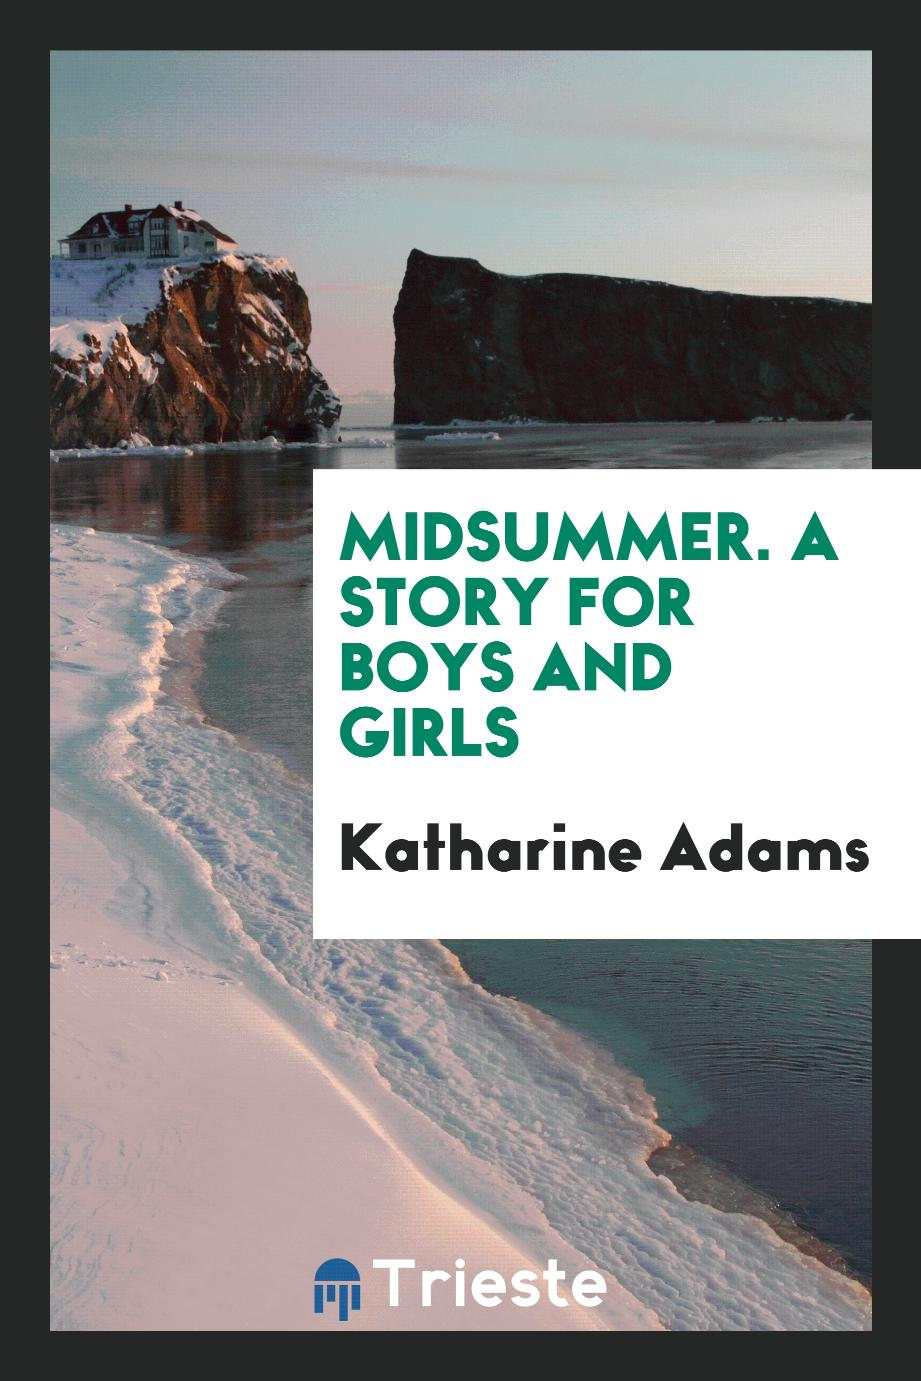 Midsummer. A story for boys and girls